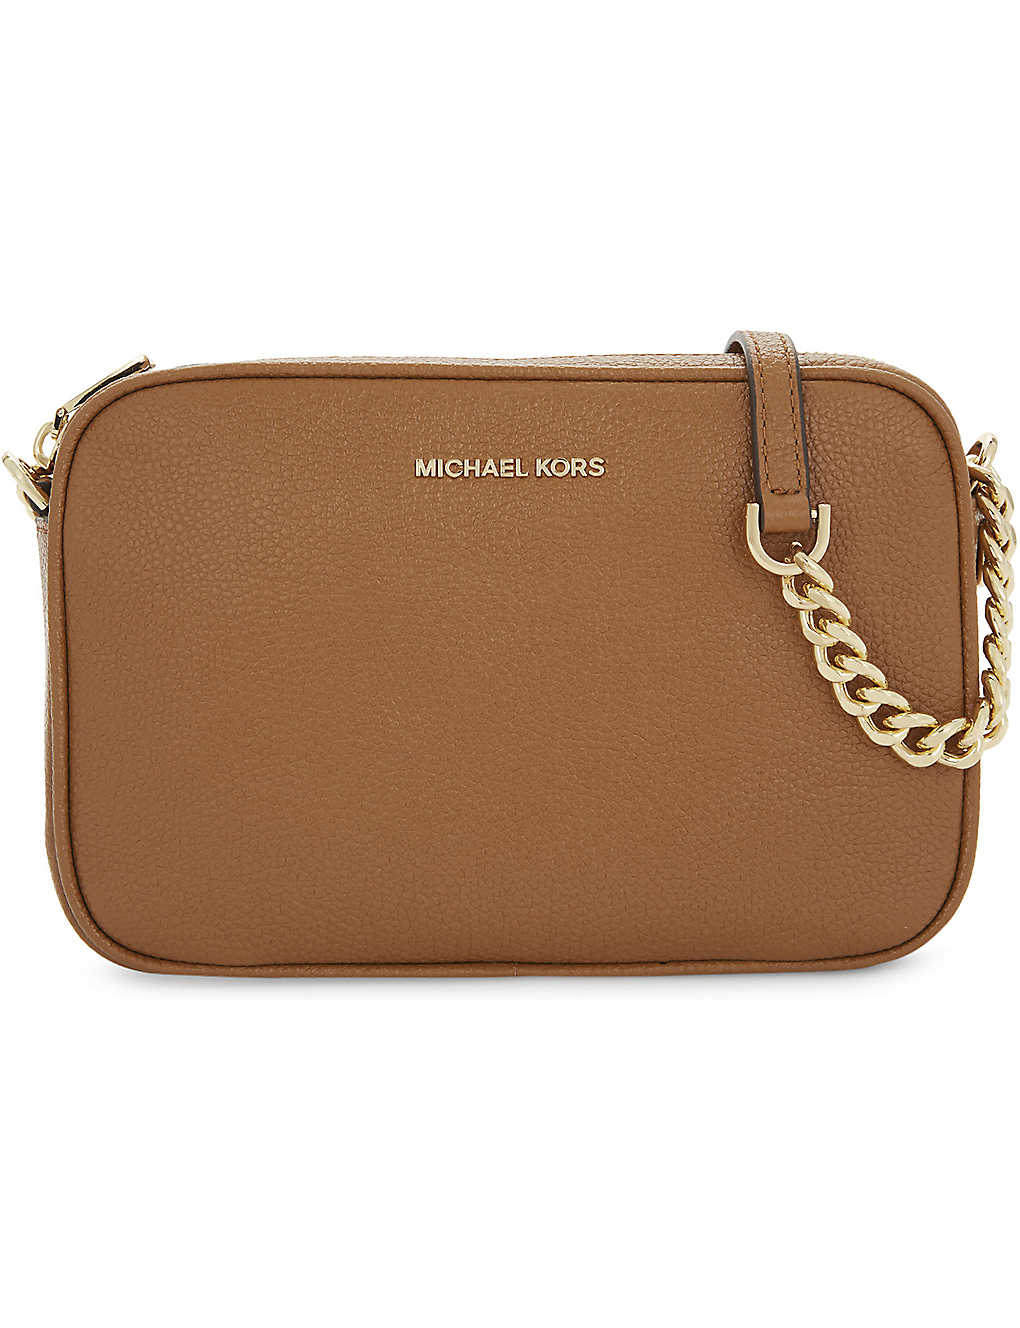 65b59e4b98ef MICHAEL MICHAEL KORS - Ginny leather cross-body bag | Selfridges.com